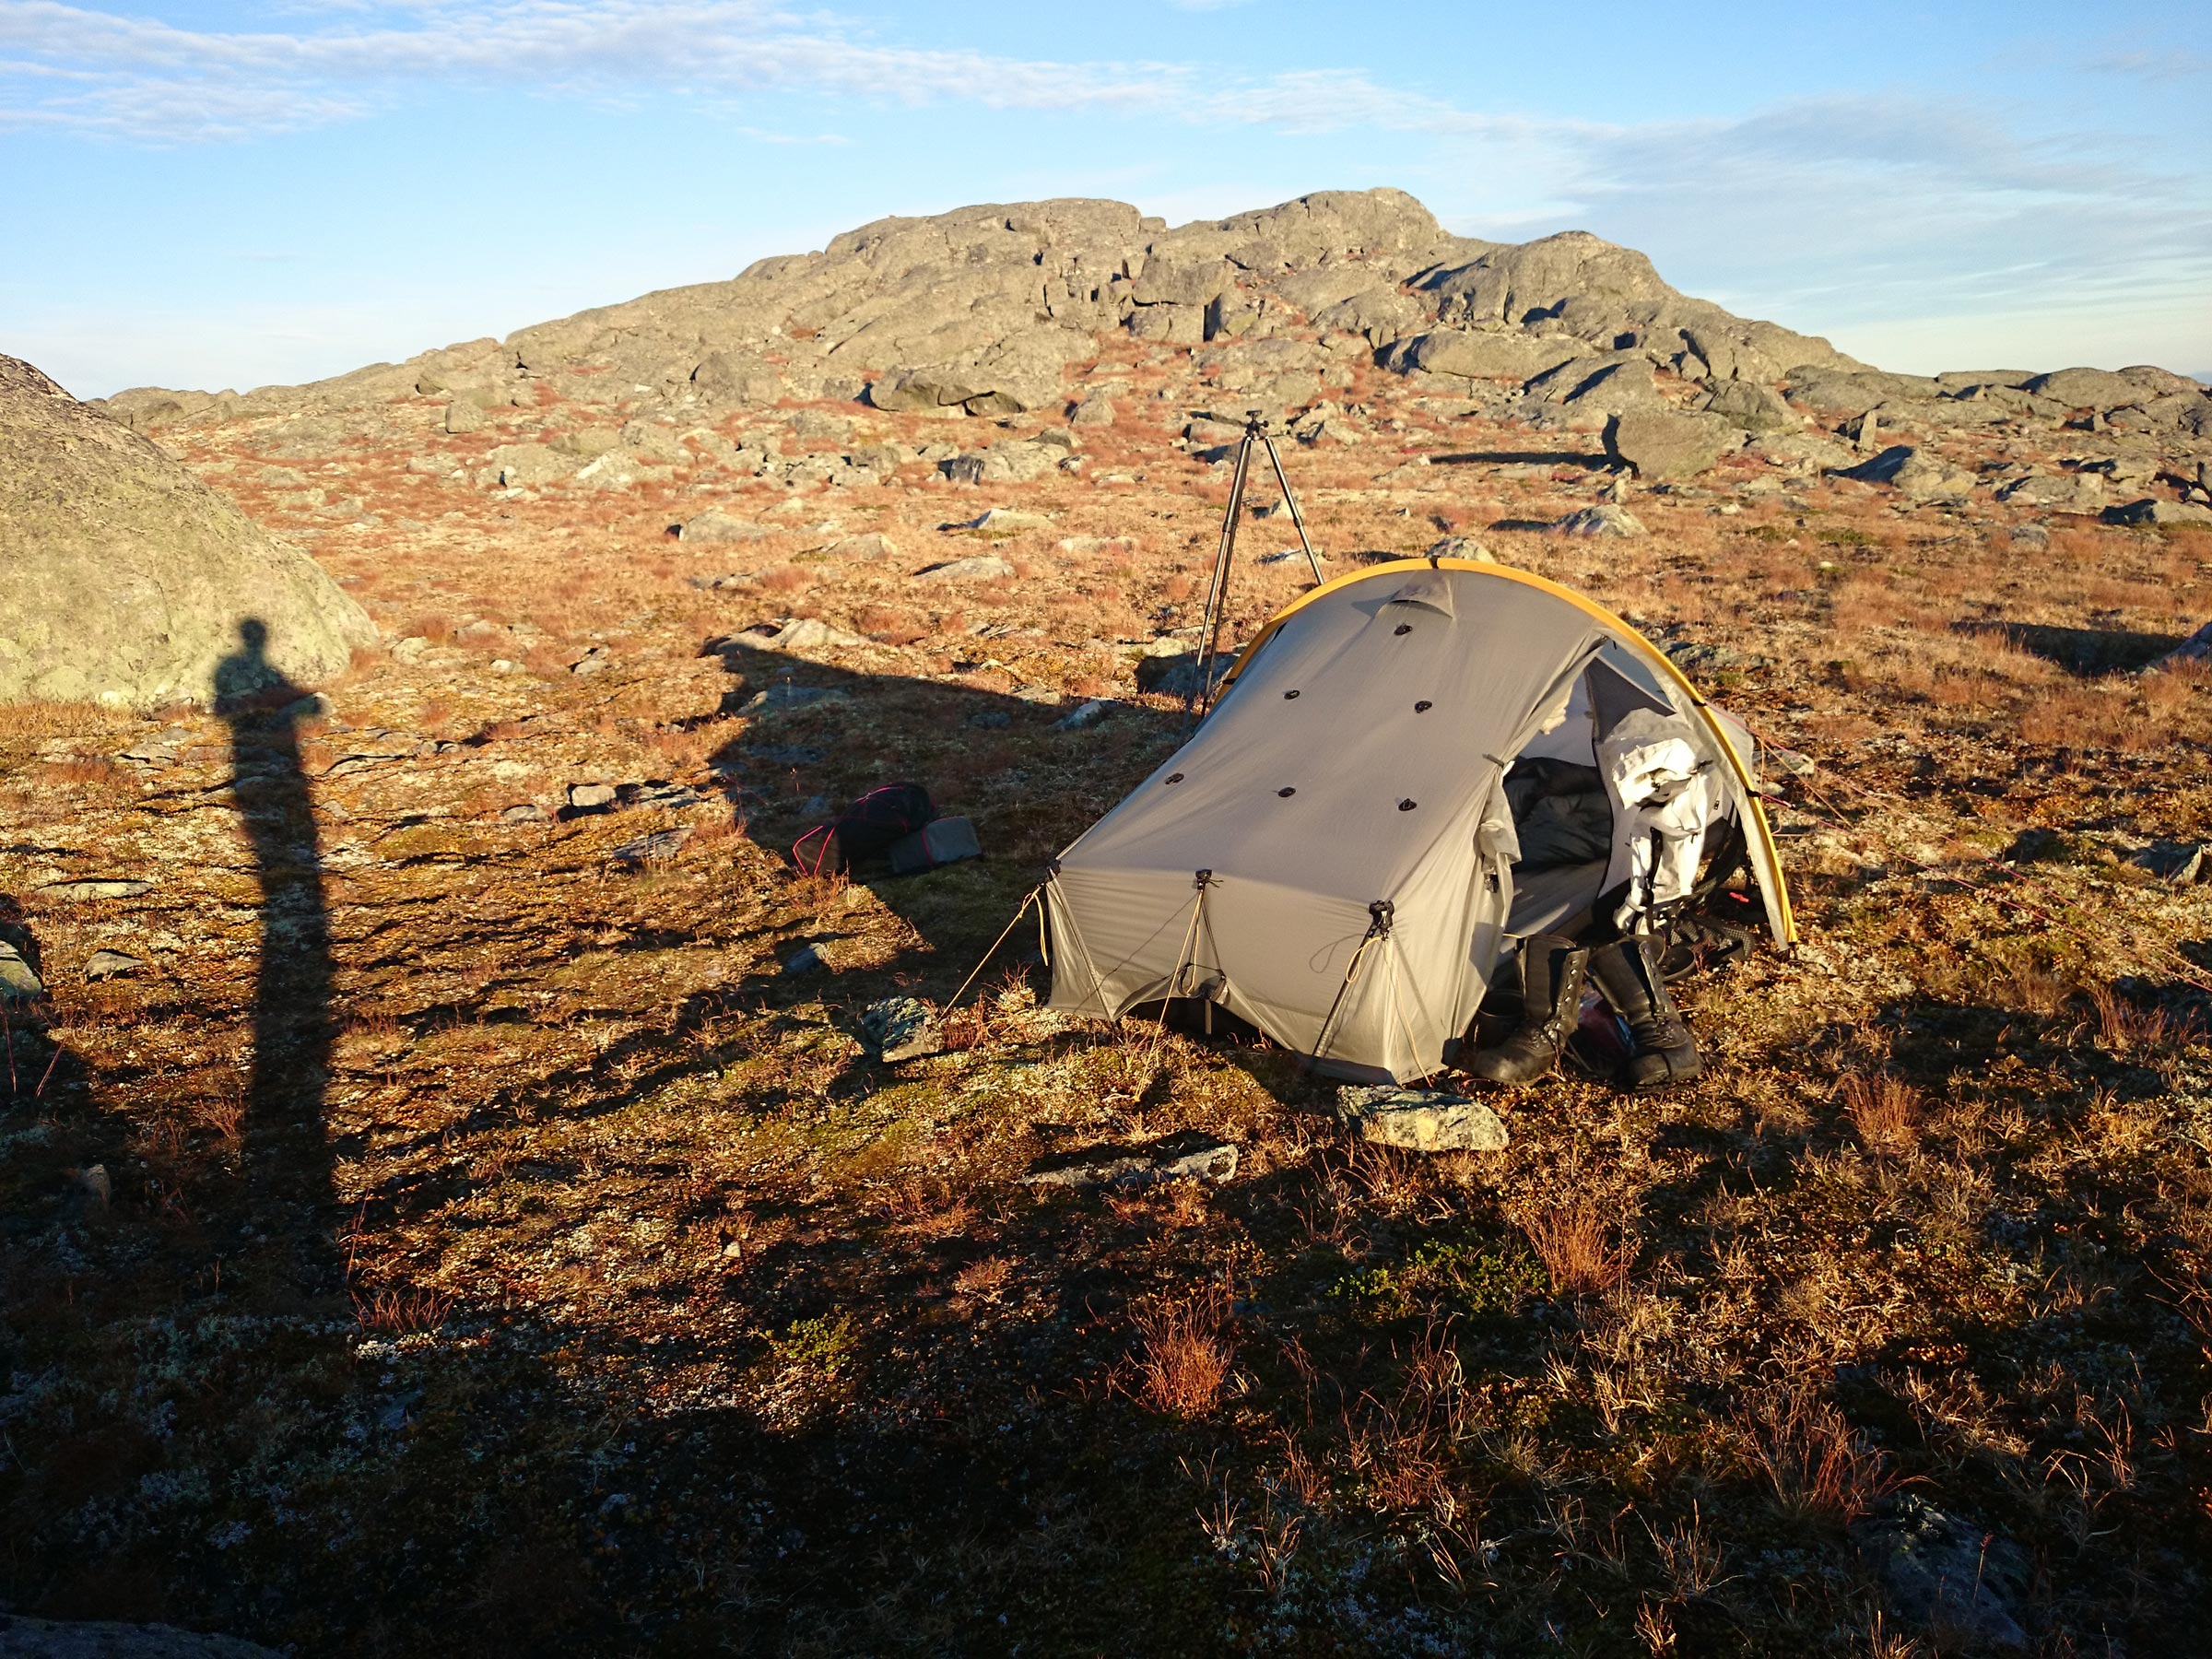 Campsite in Sarek National Park on a wonderful September afternoon. Life is good!